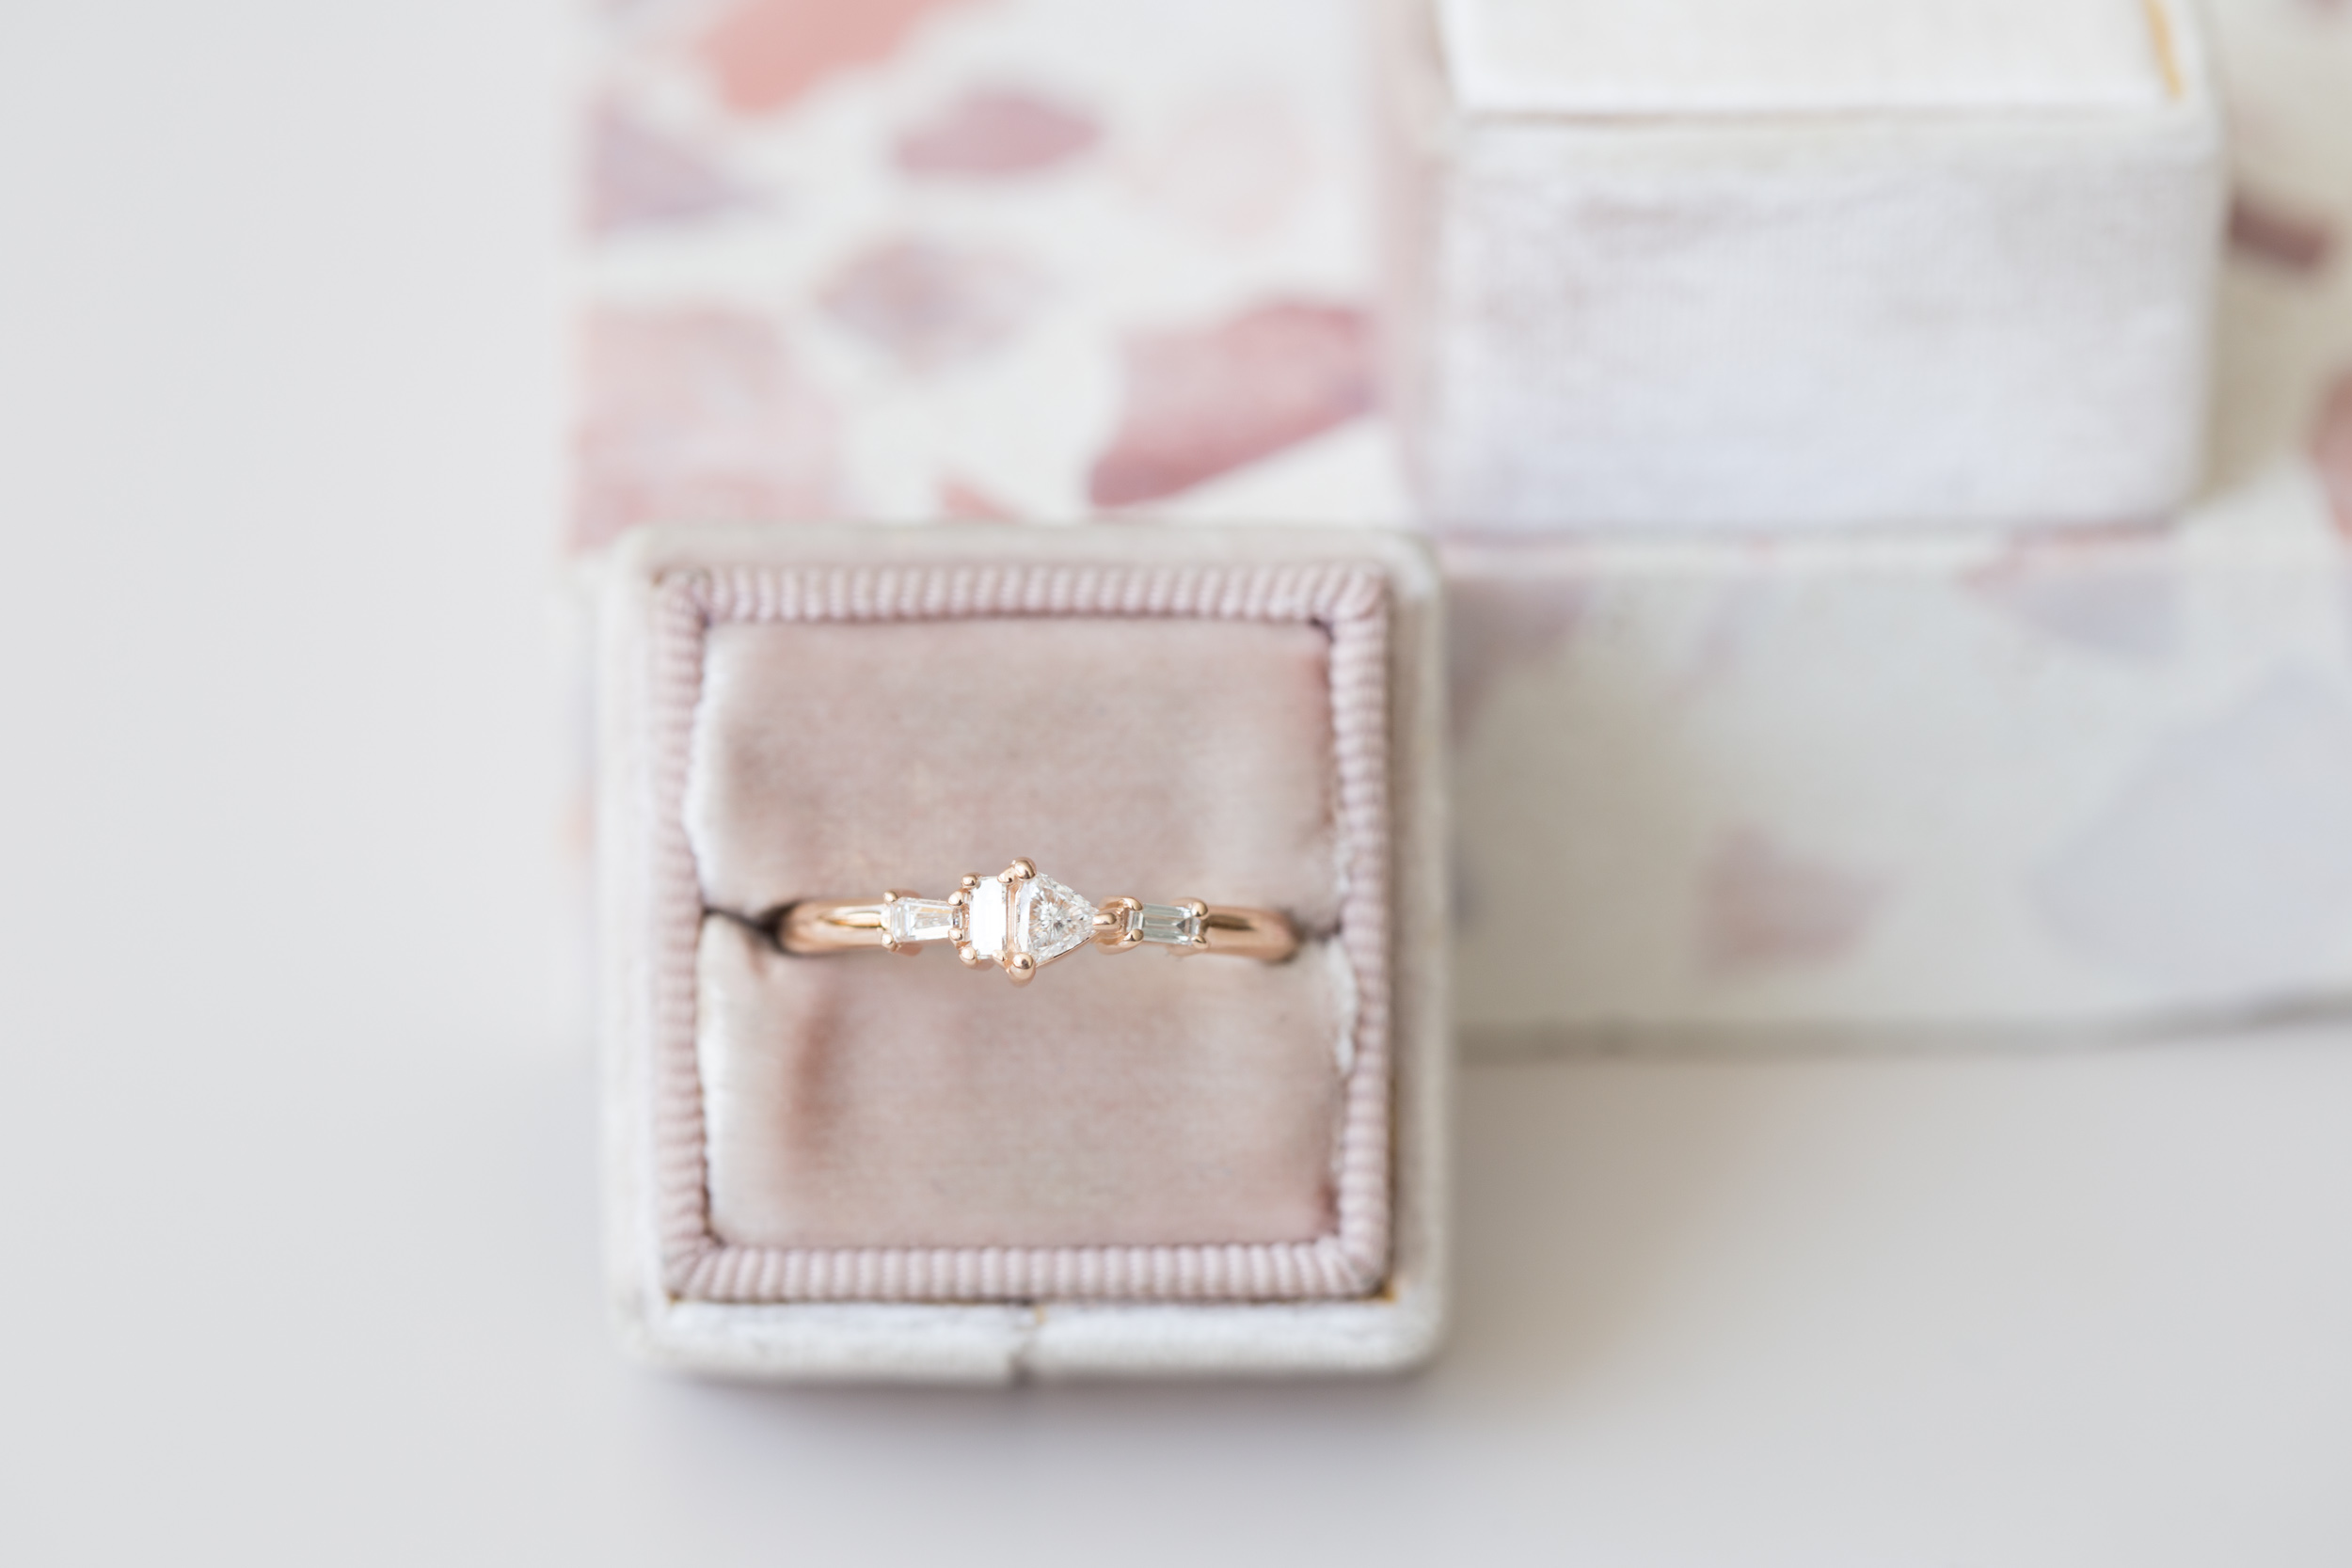 Becca + Molly Triangle Baguette Ring-5.jpg